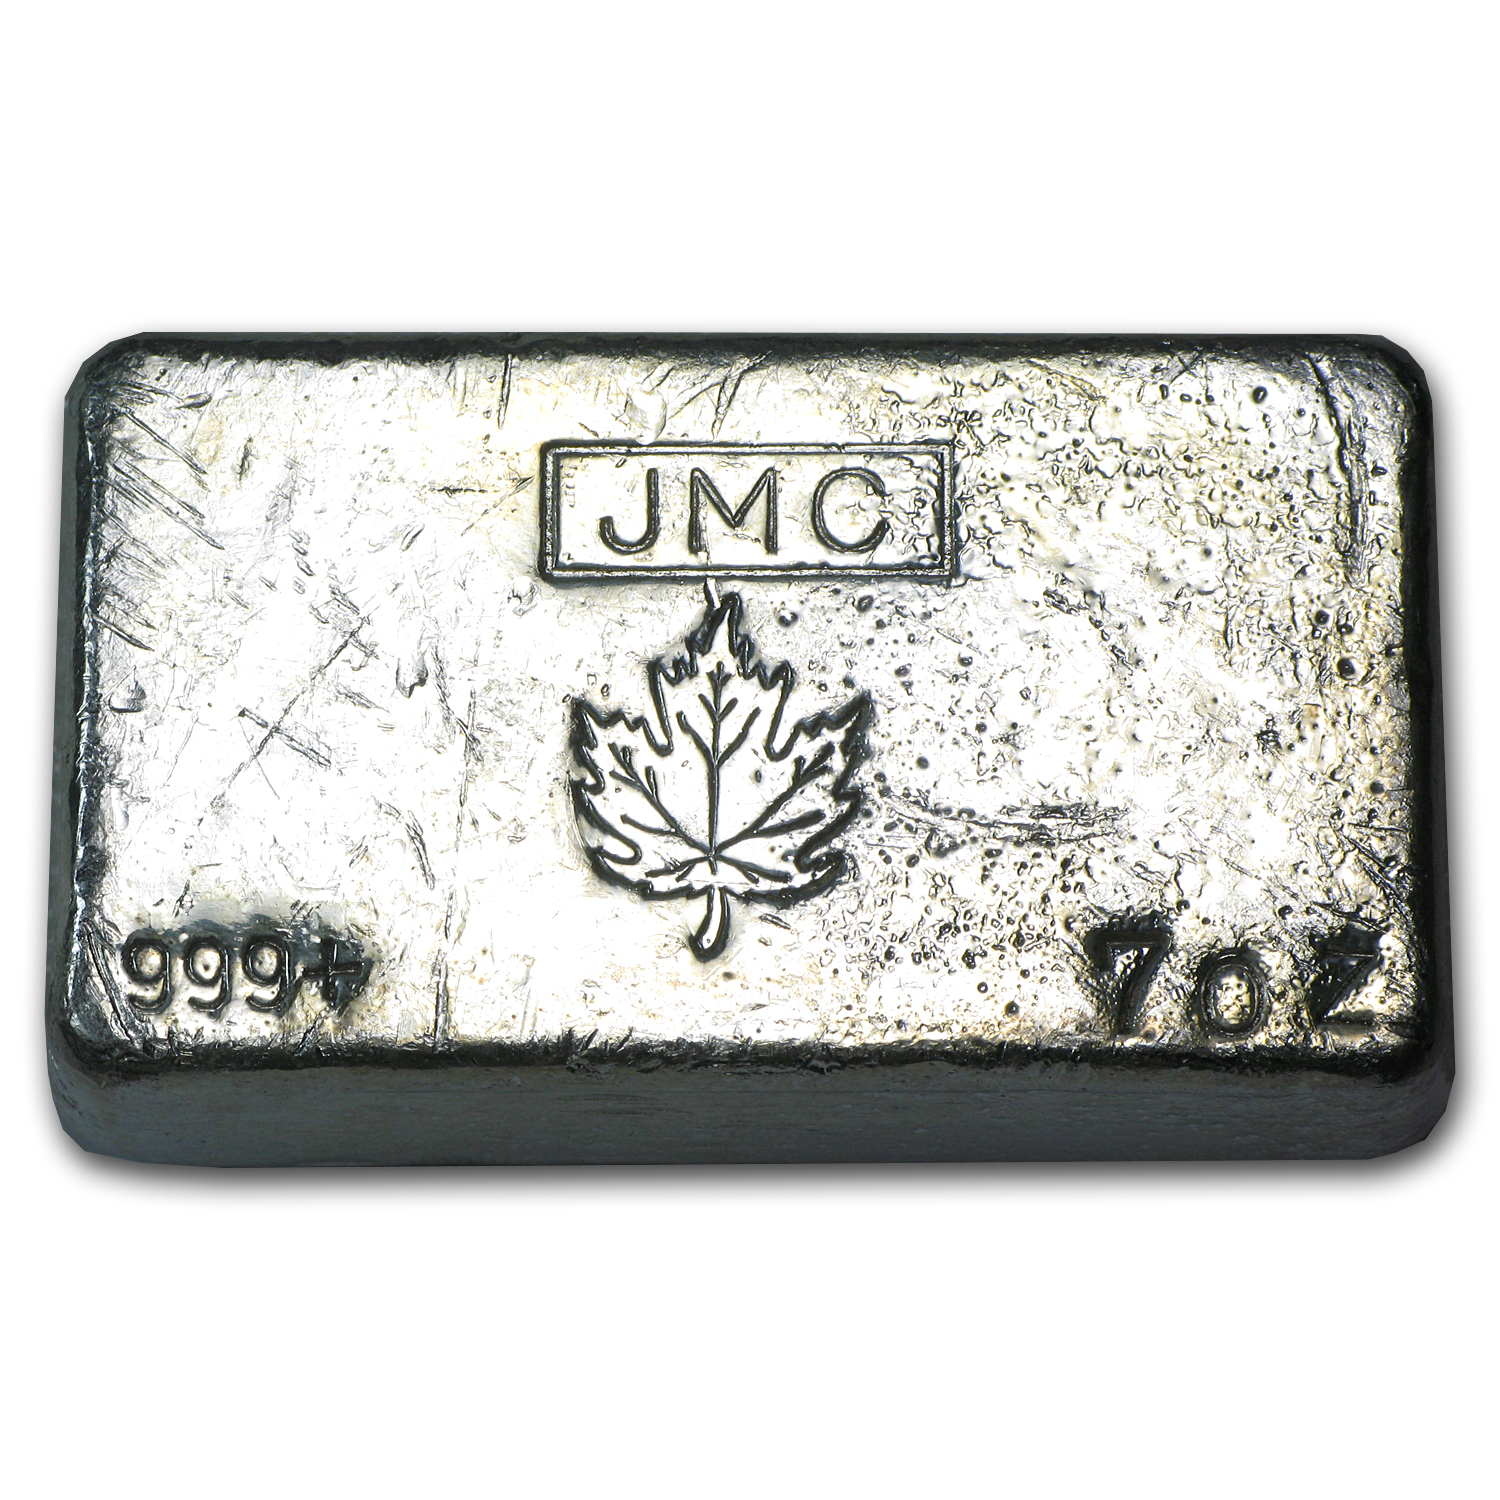 7 oz Silver Bar - Johnson Matthey (Poured/Canada)